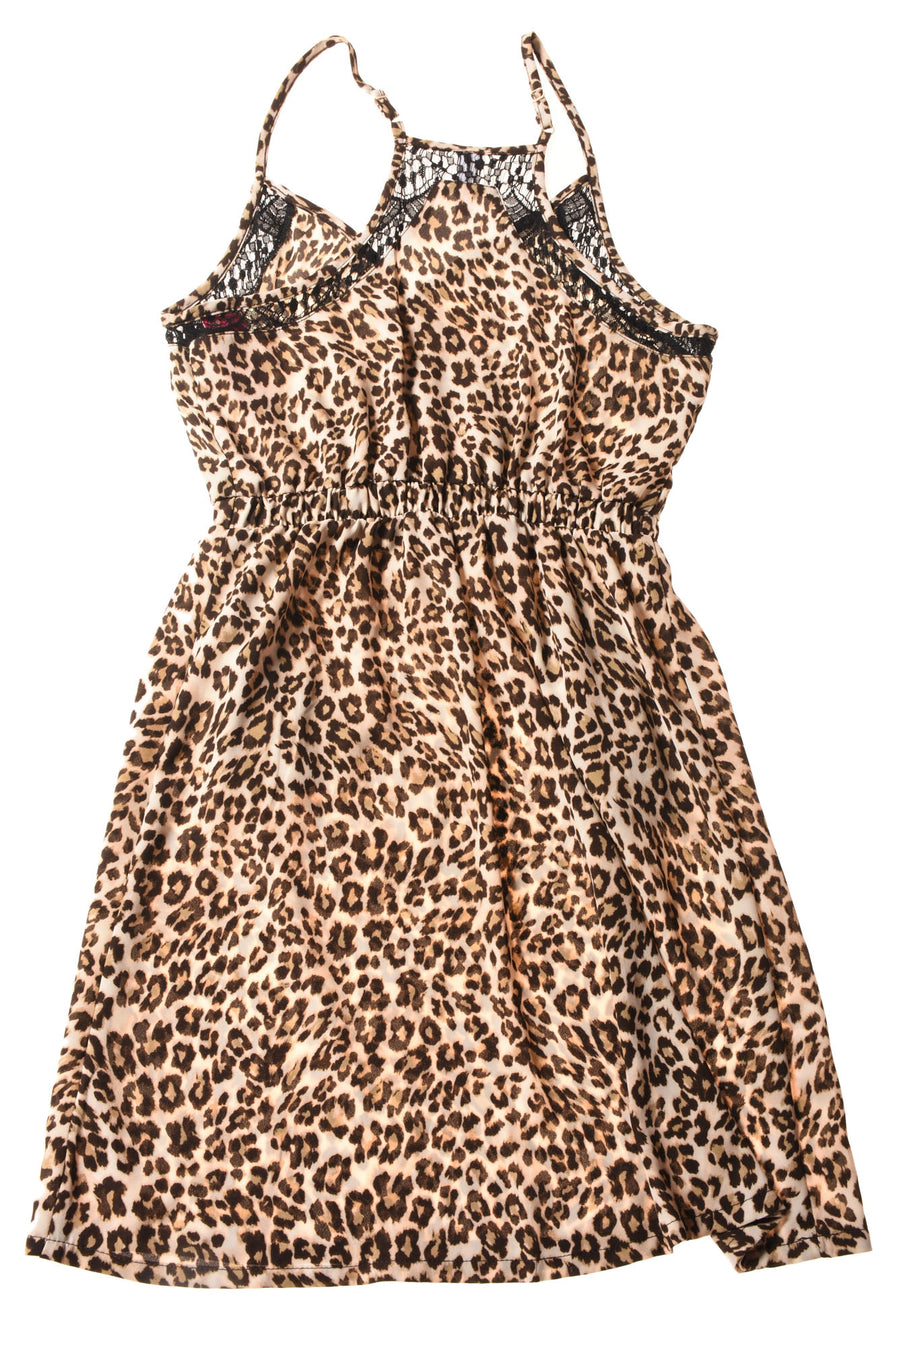 NEW Xhilaration Women's Dress Small Brown